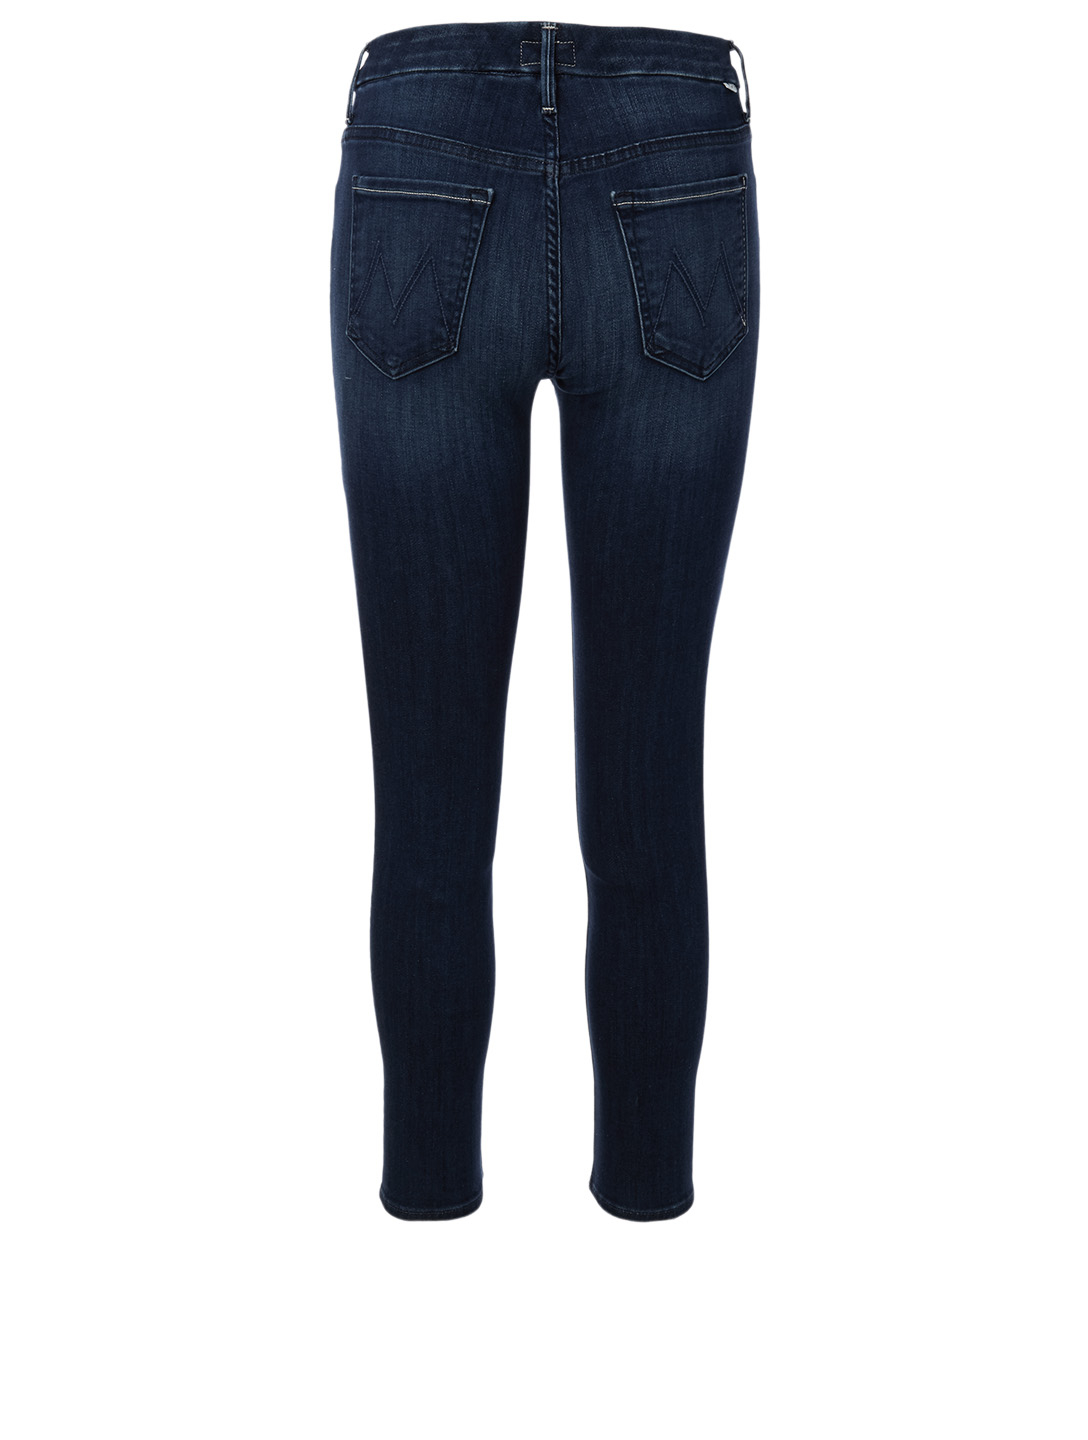 MOTHER Looker High-Waisted Ankle Jeans Women's Blue